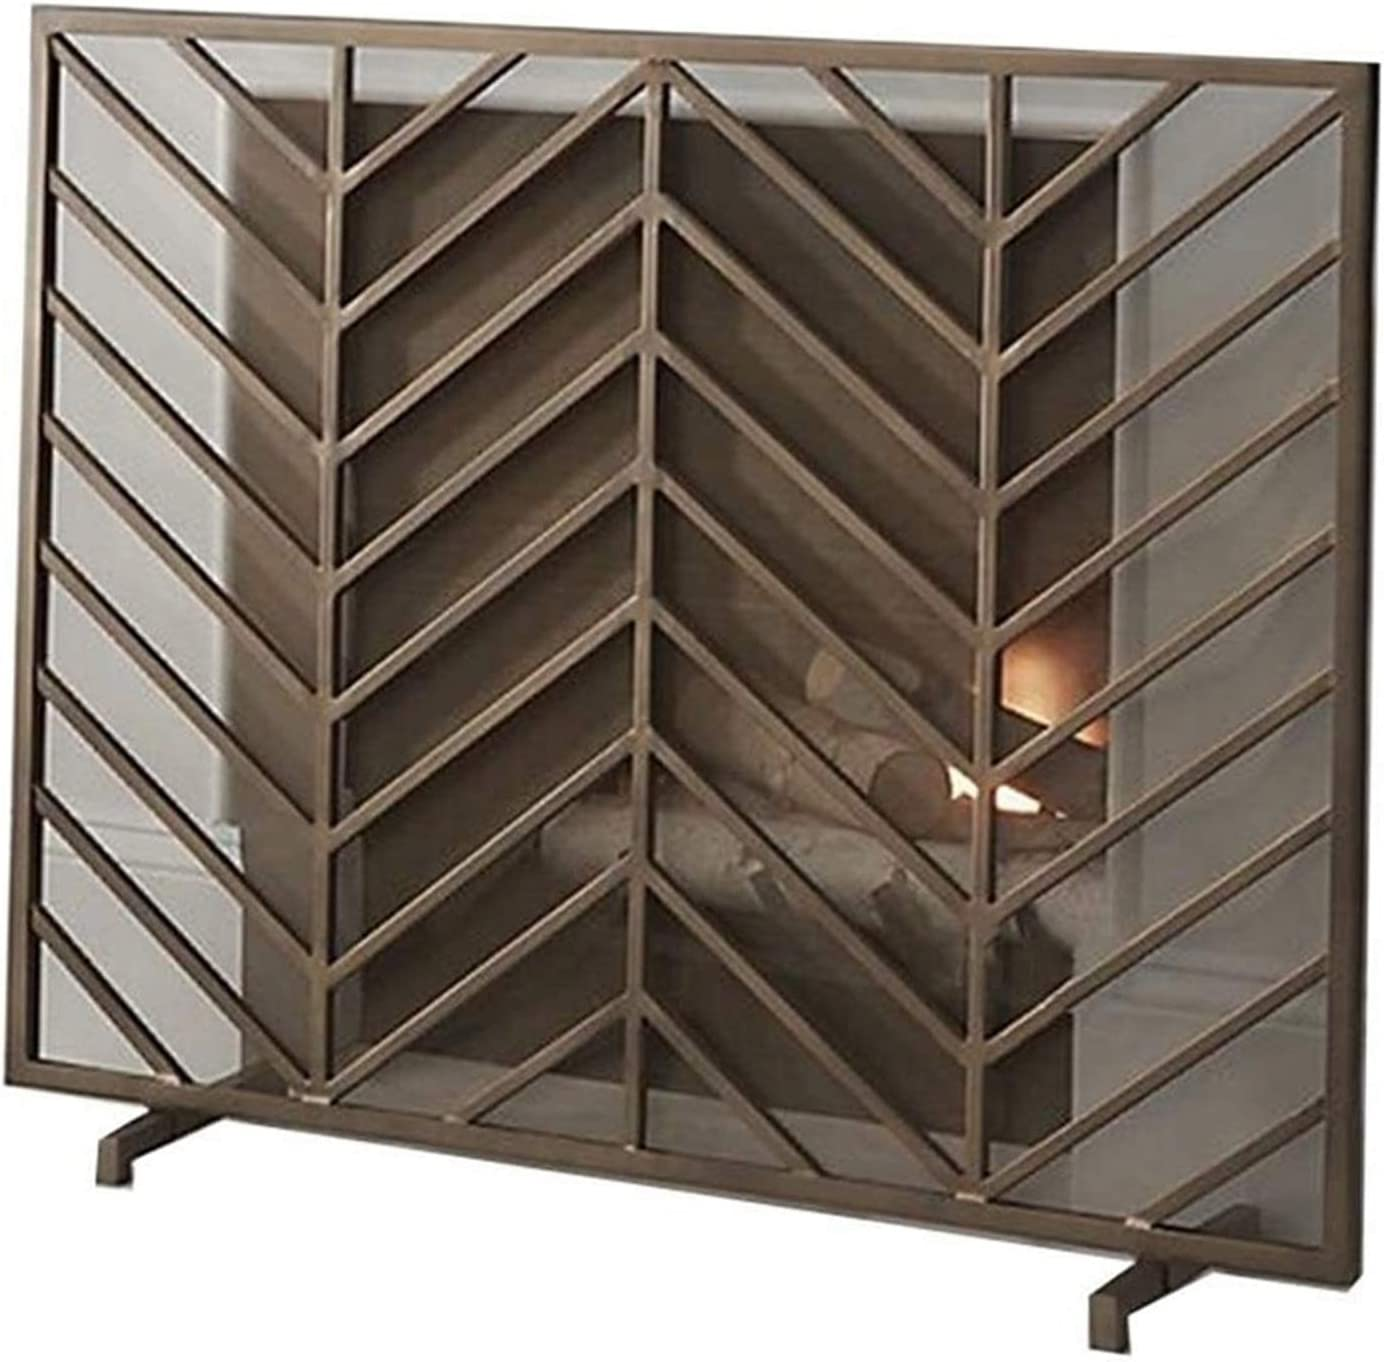 SMLZV Fireplace Screens Single Screen Gua Chicago Mall Max 62% OFF Spark Panle